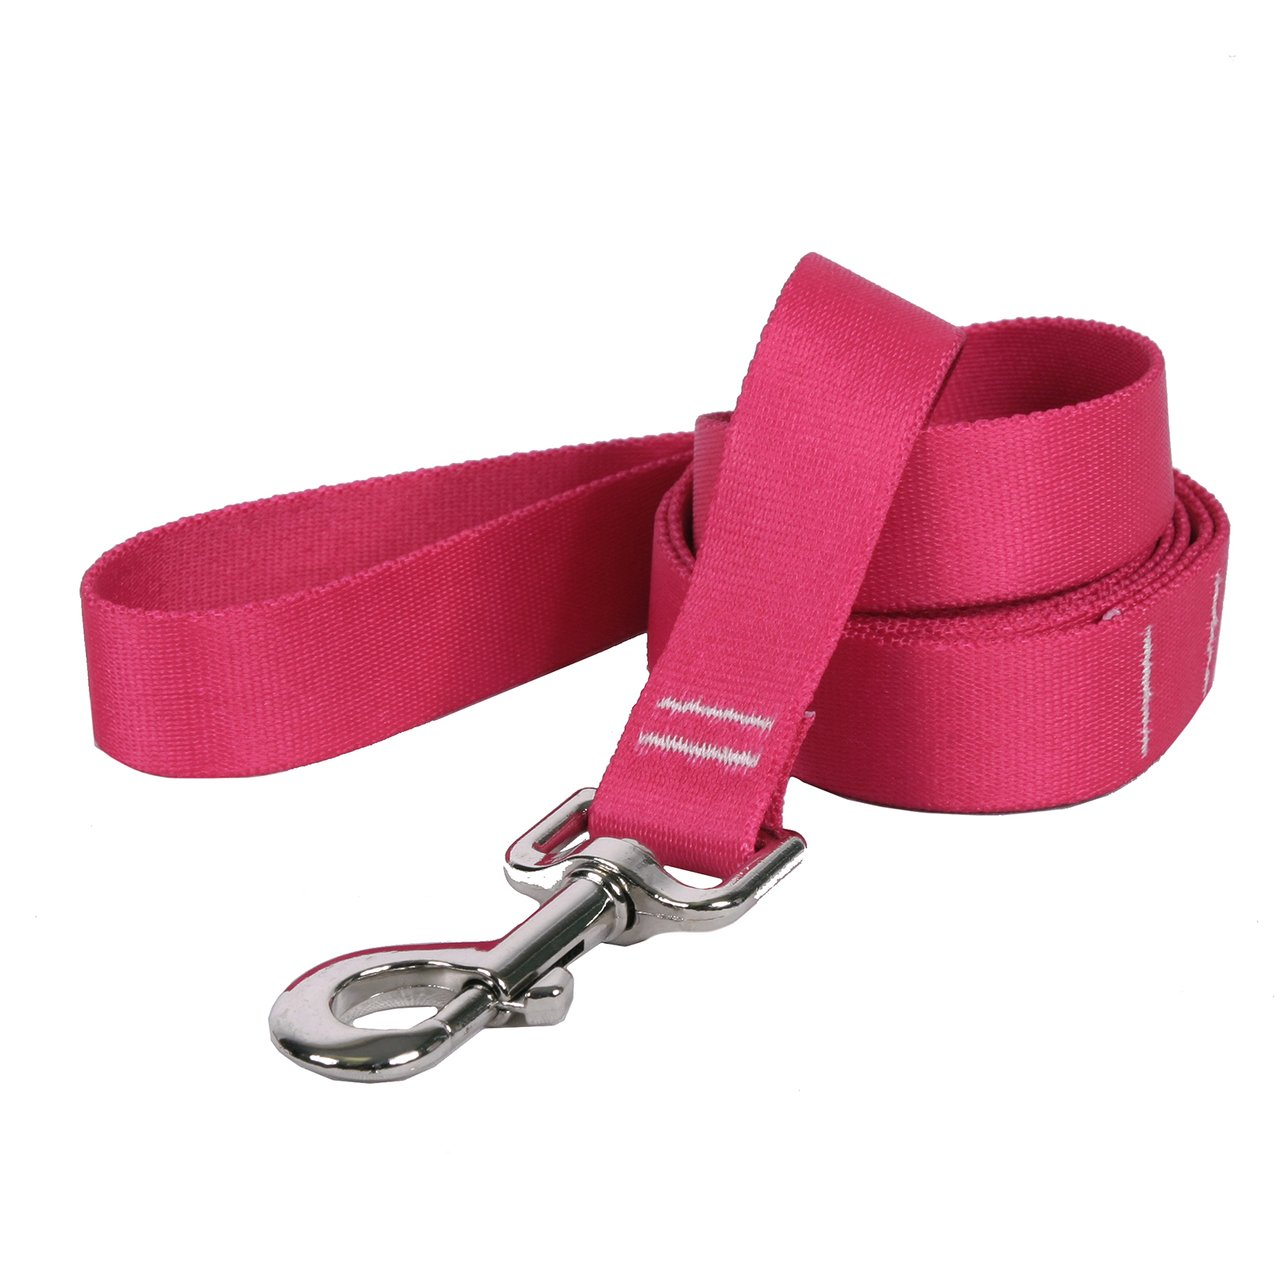 3 4\ Yellow Dog Design Magenta Simple Solid Dog Leash, Small Medium-3 4  Wide and 5' (60 ) long